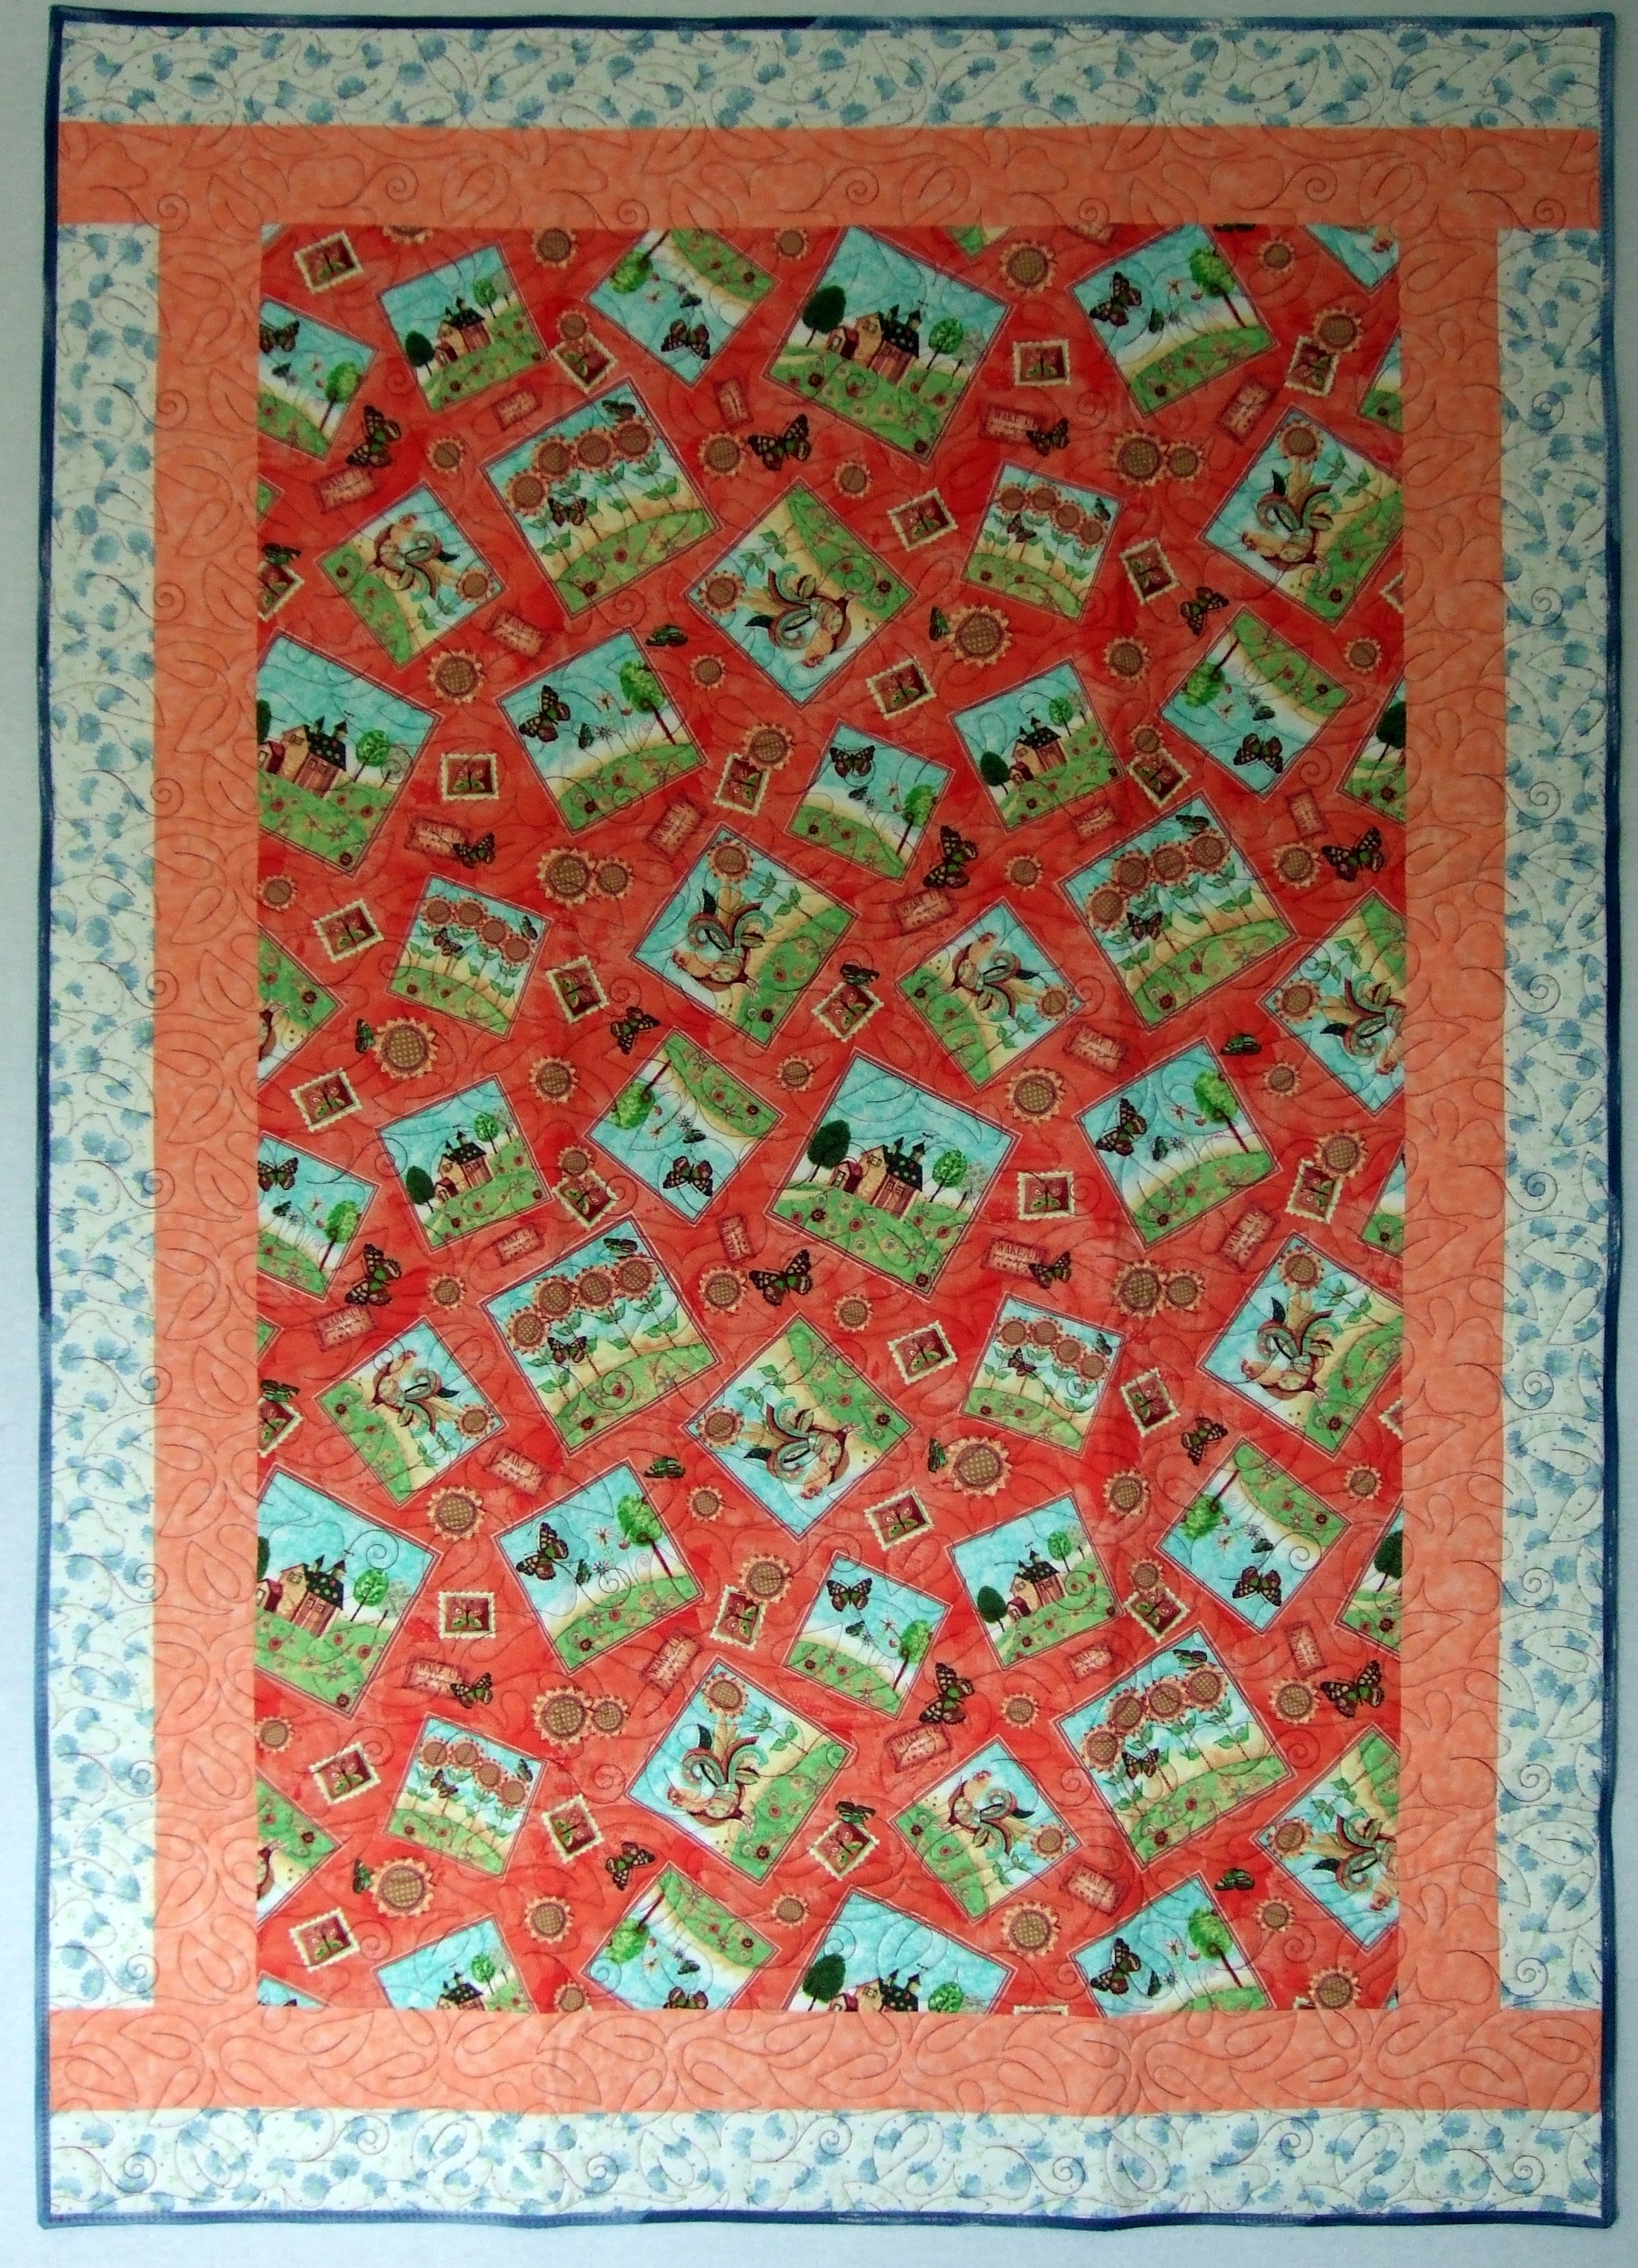 Beautiful Quilts from Anya, Sophia, Sue and Kathy | Quilts Beyond ... : kathy quilts - Adamdwight.com